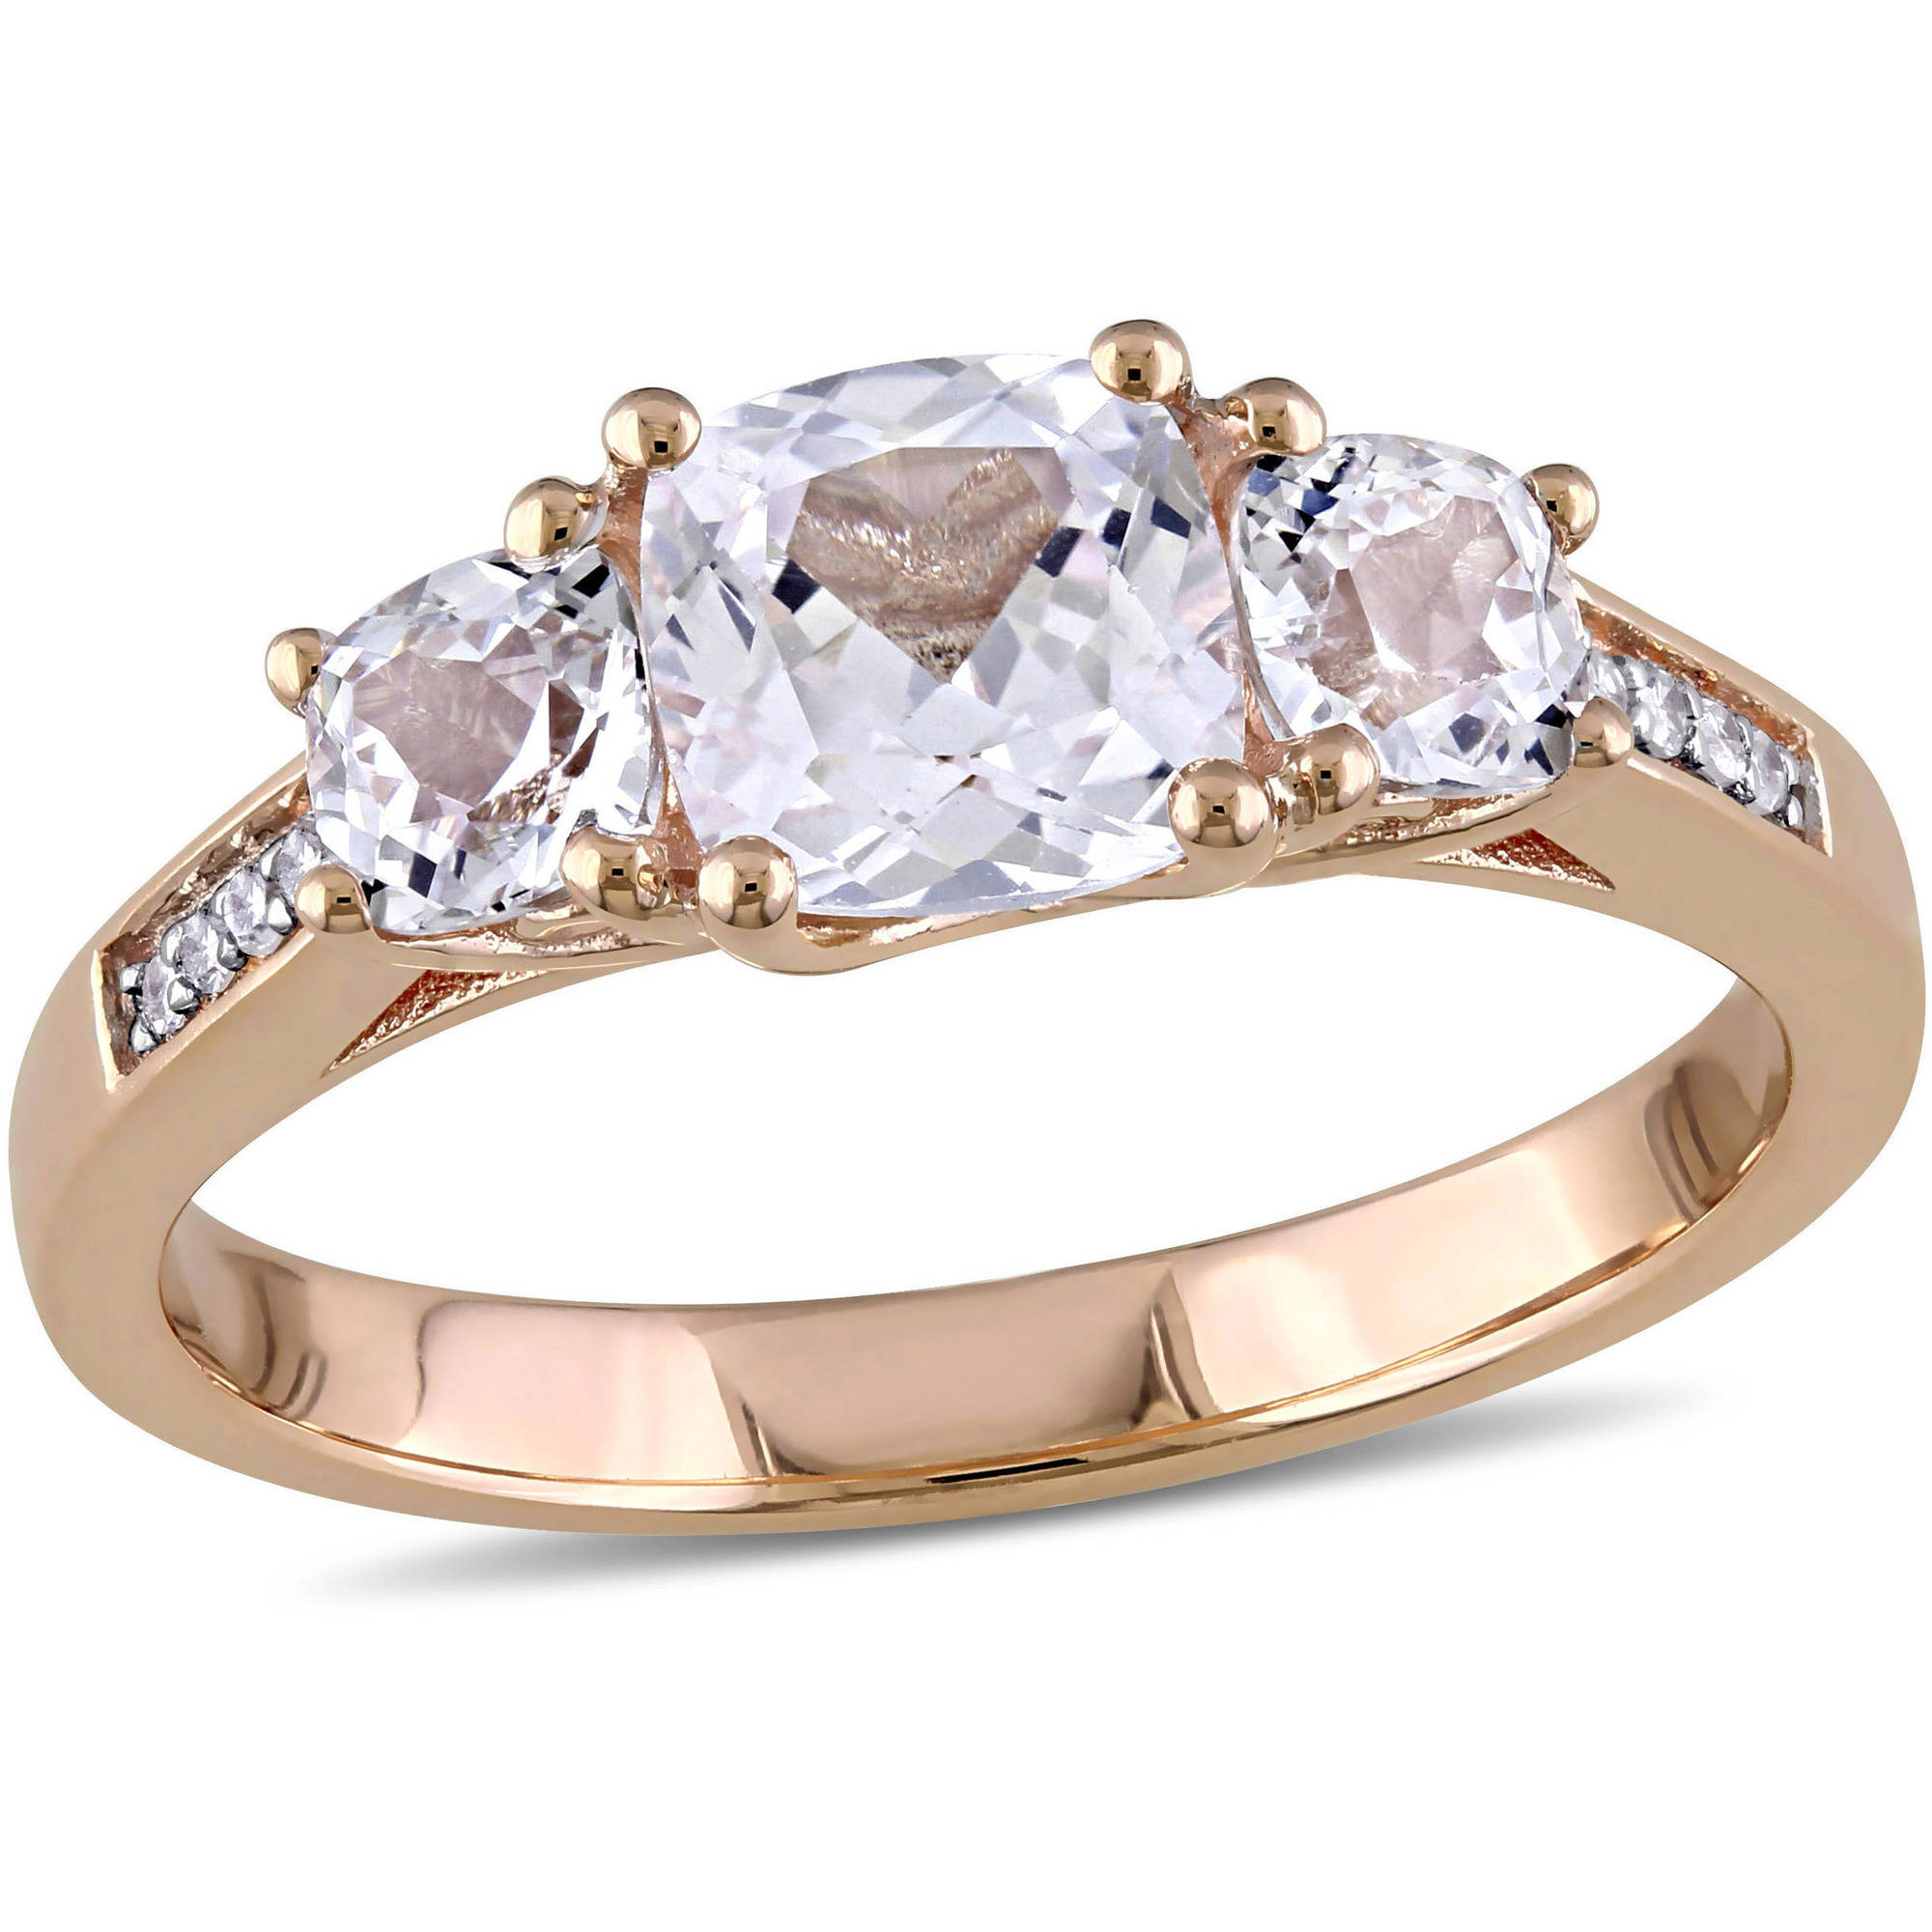 Miabella 2 Carat T.G.W. Cushion-Cut Created White Sapphire and Diamond-Accent 10kt Rose Gold Three-Stone Engagement Ring by Miabella